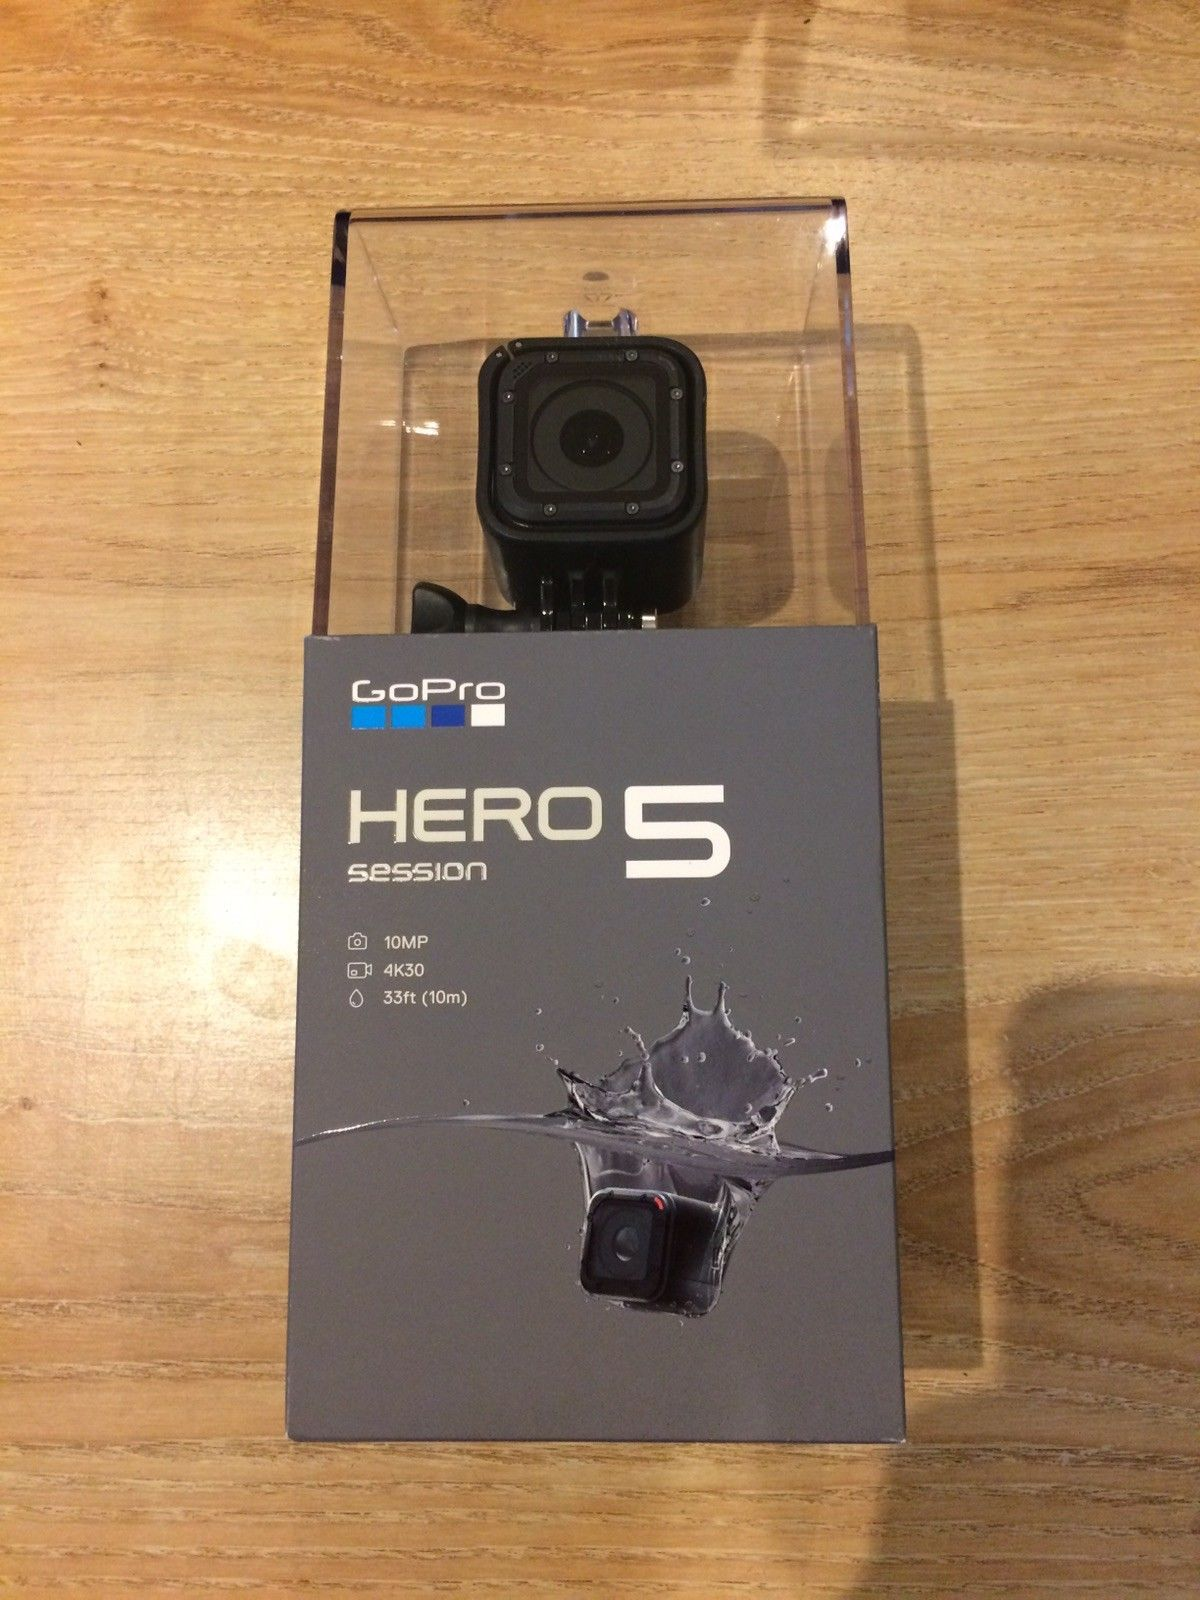 GoPro HERO5 Session Digitised digital camera Black – Pristine and Sealed – 4K Video – Water-proof